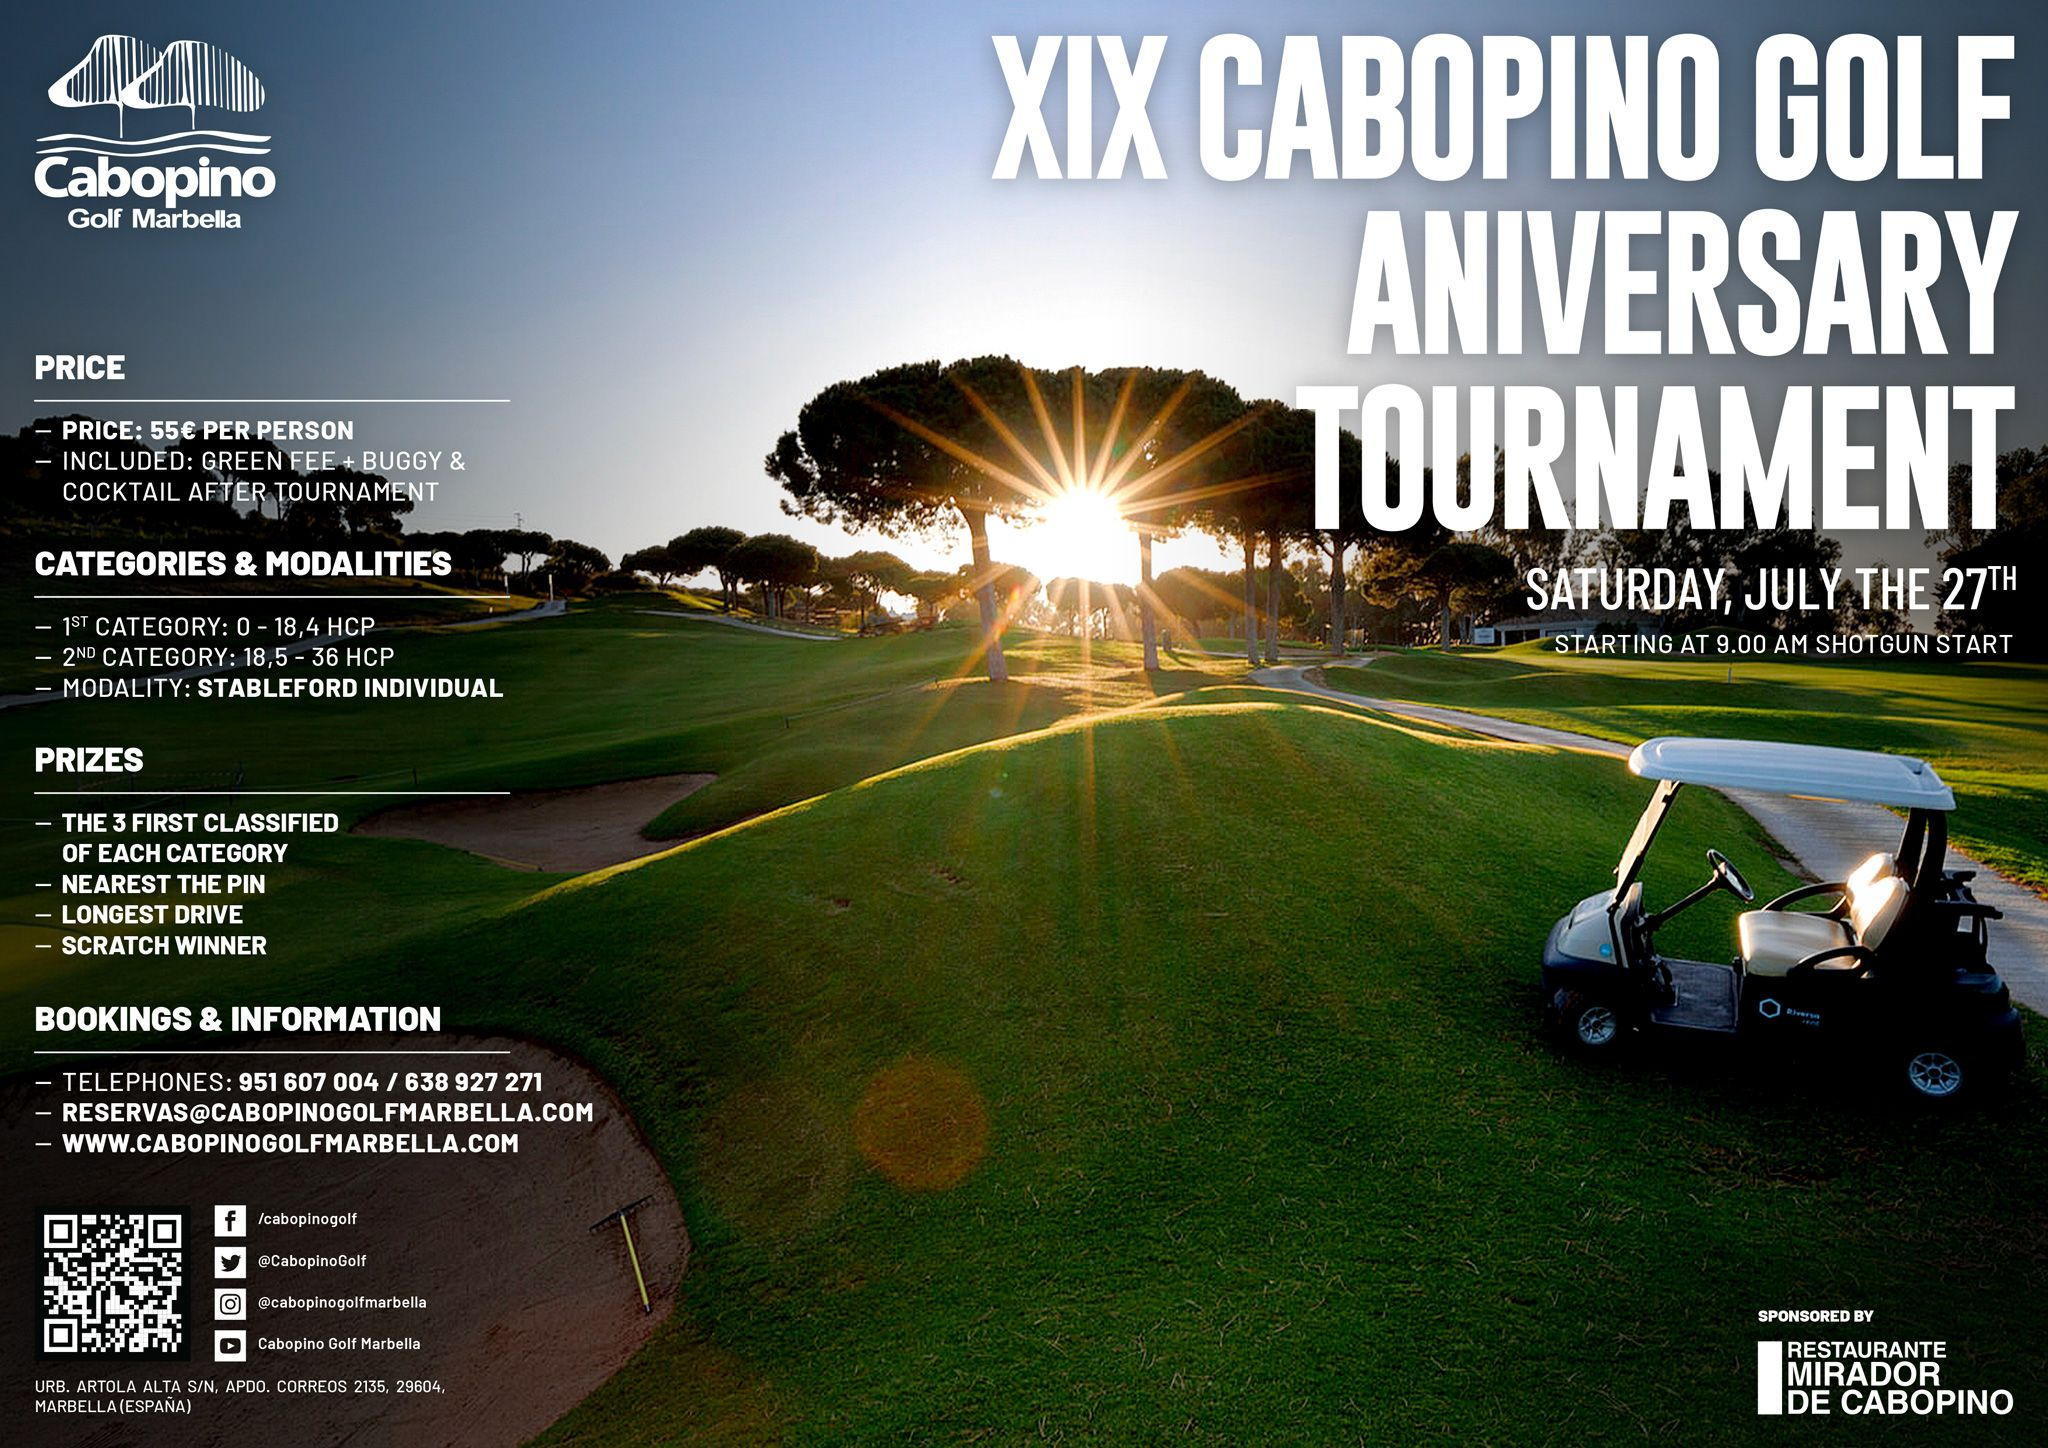 XIX Cabopino Golf Aniversary Tournament